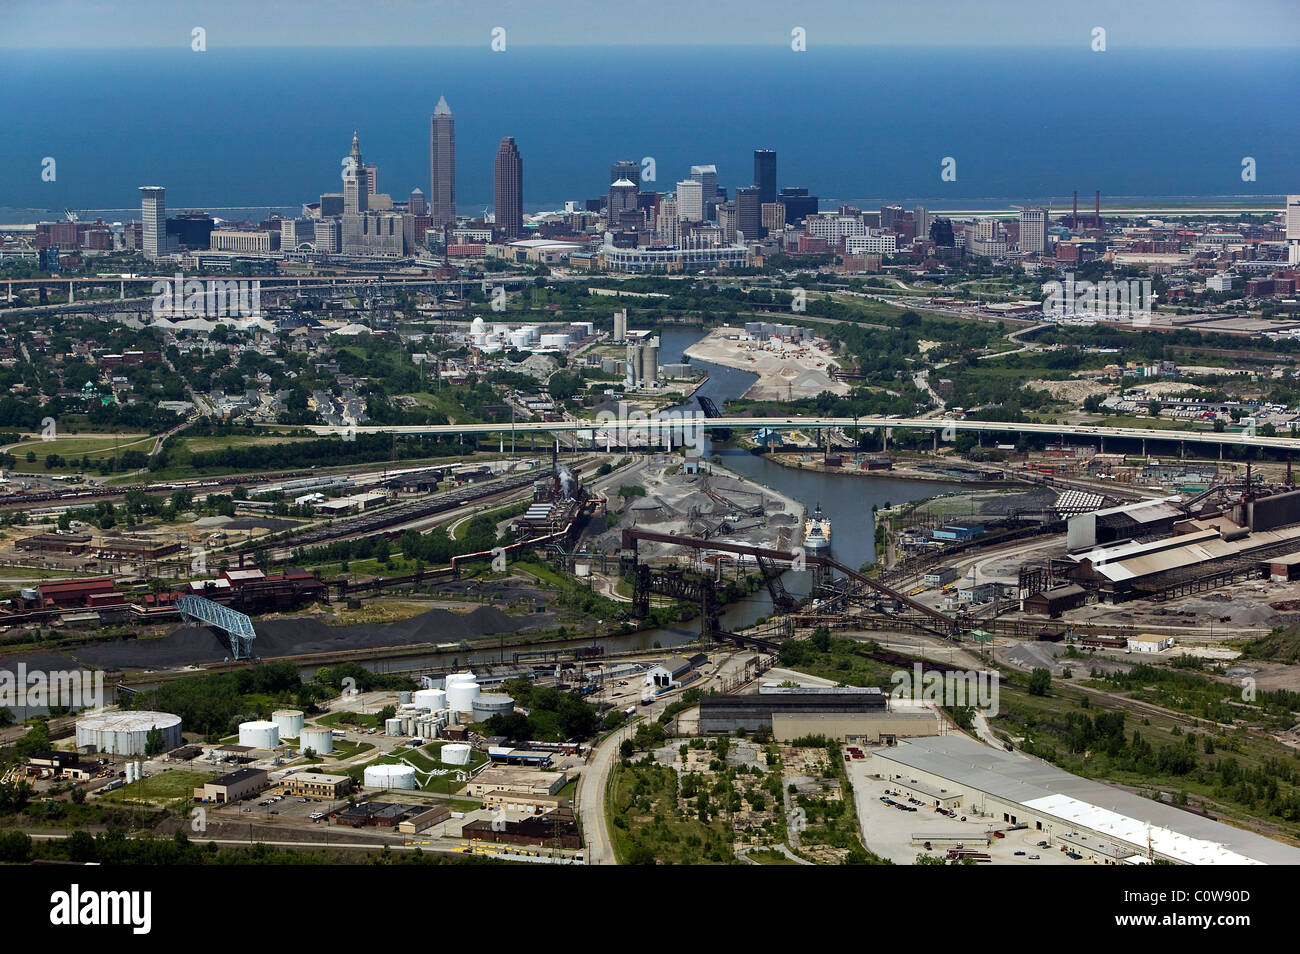 aerial view above Cuyahoga river toward Lake Erie downtown Cleveland Ohio - Stock Image